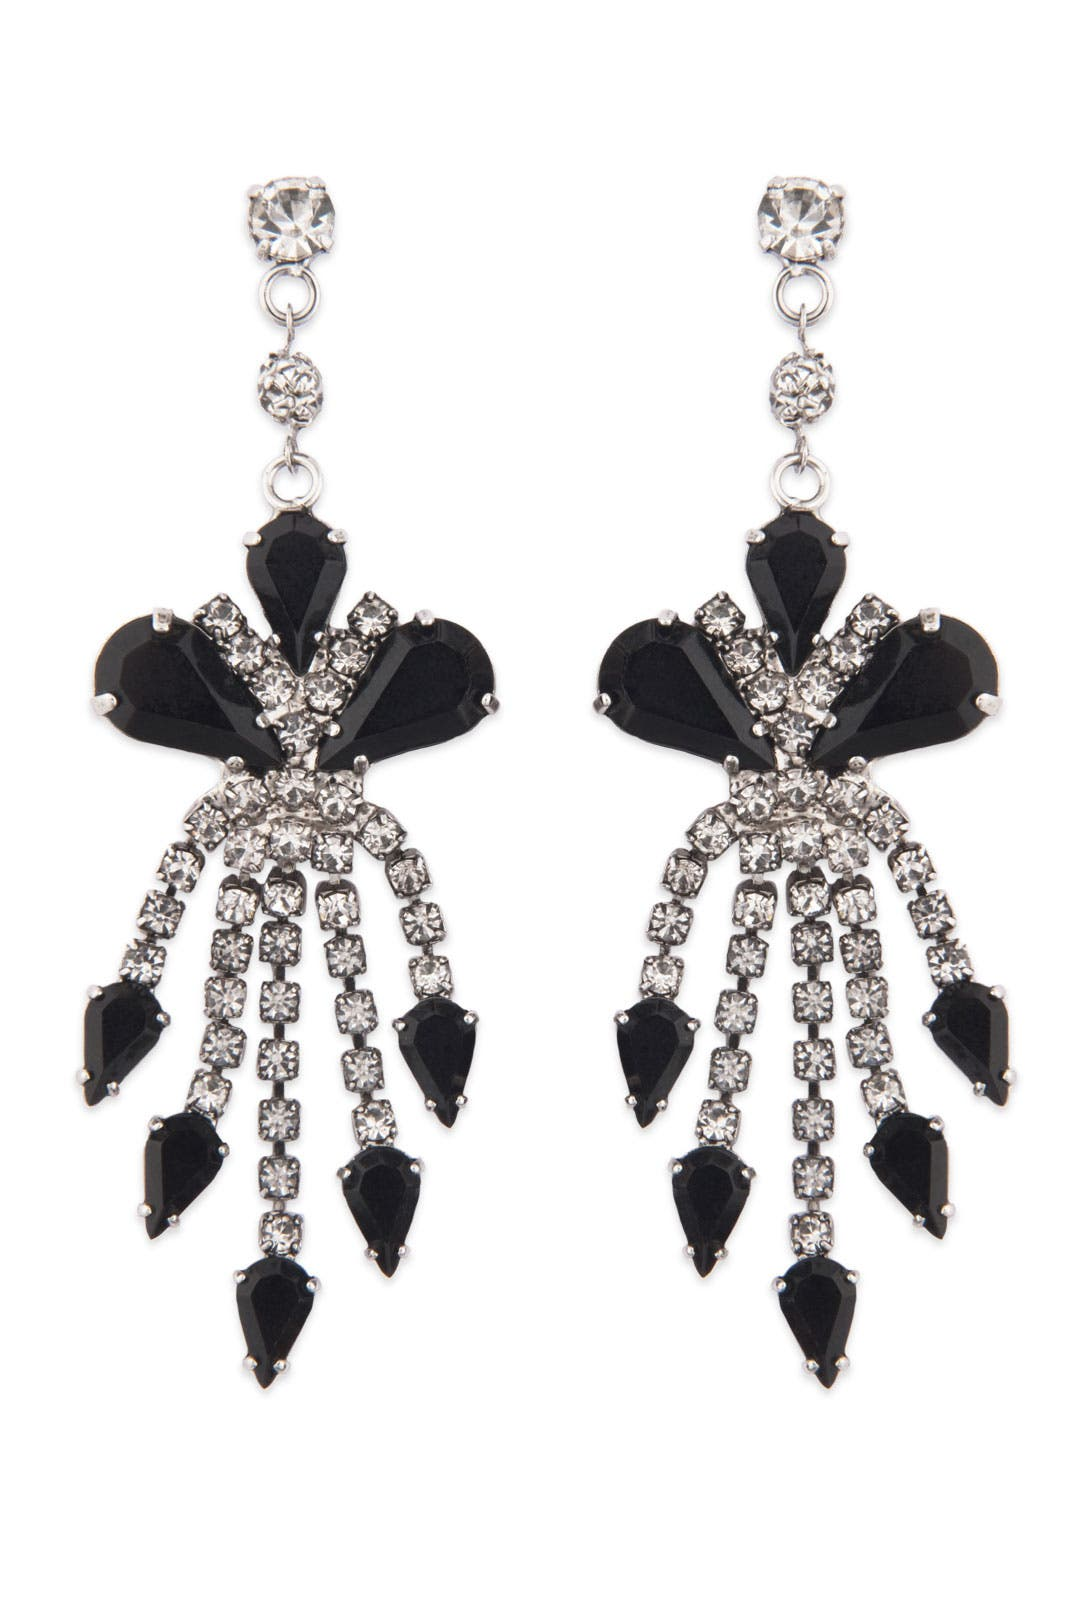 Black and Crystal Waterfall Earrings by Tom Binns